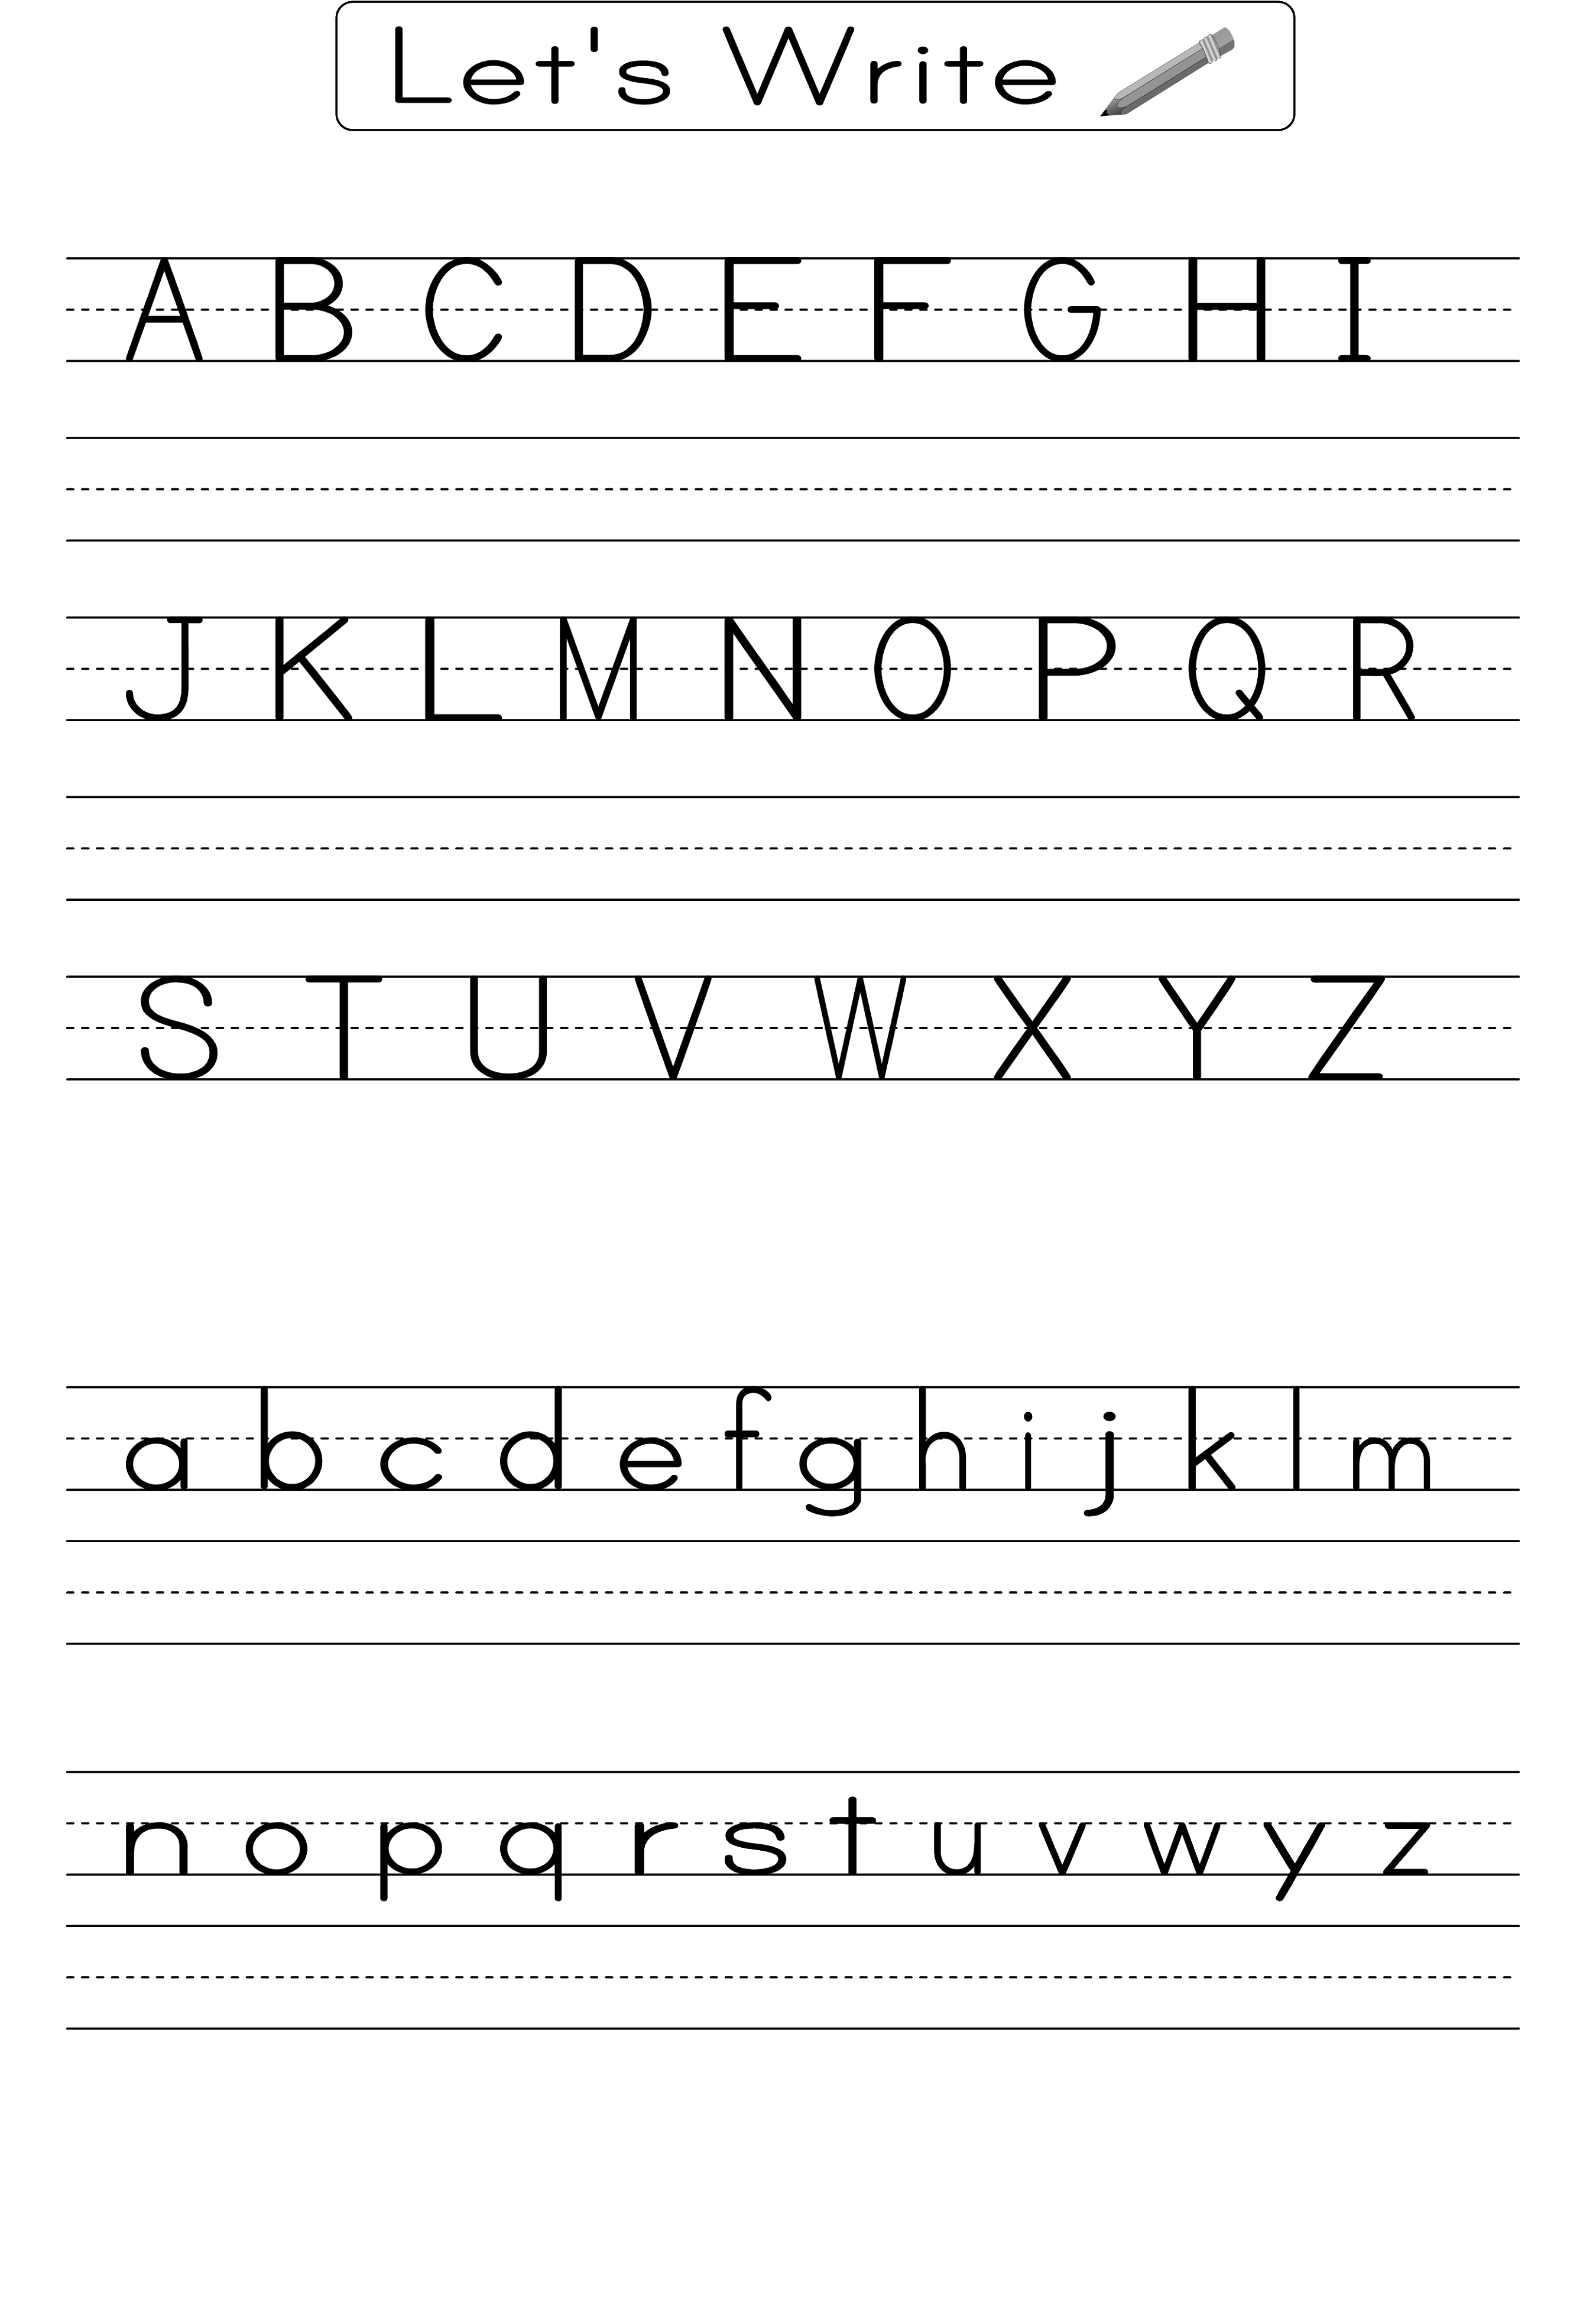 Writing Alphabet Worksheets For Students 2019   Educative Printable